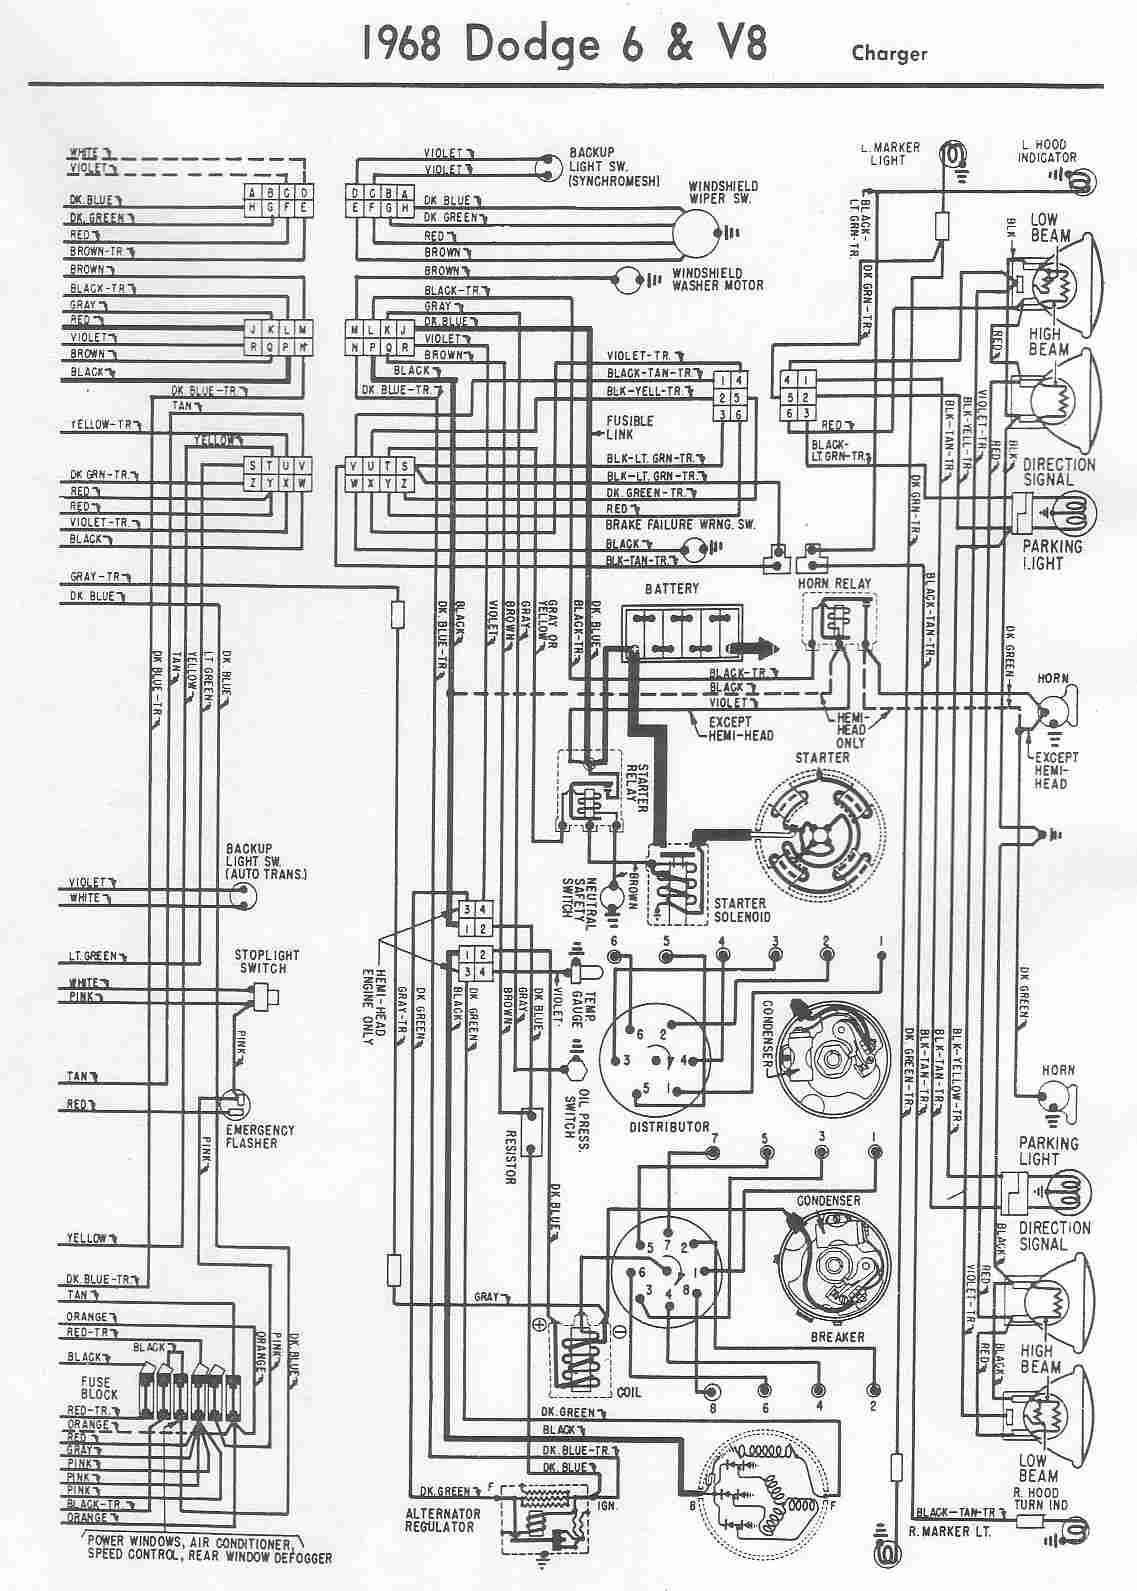 charger electrical wiring diagram of 1968 dodge 6 and v8?t\=1508404771 1970 dodge dart wiring diagram 1970 dodge dart colors \u2022 free 2008 dodge charger wiring harness at gsmx.co